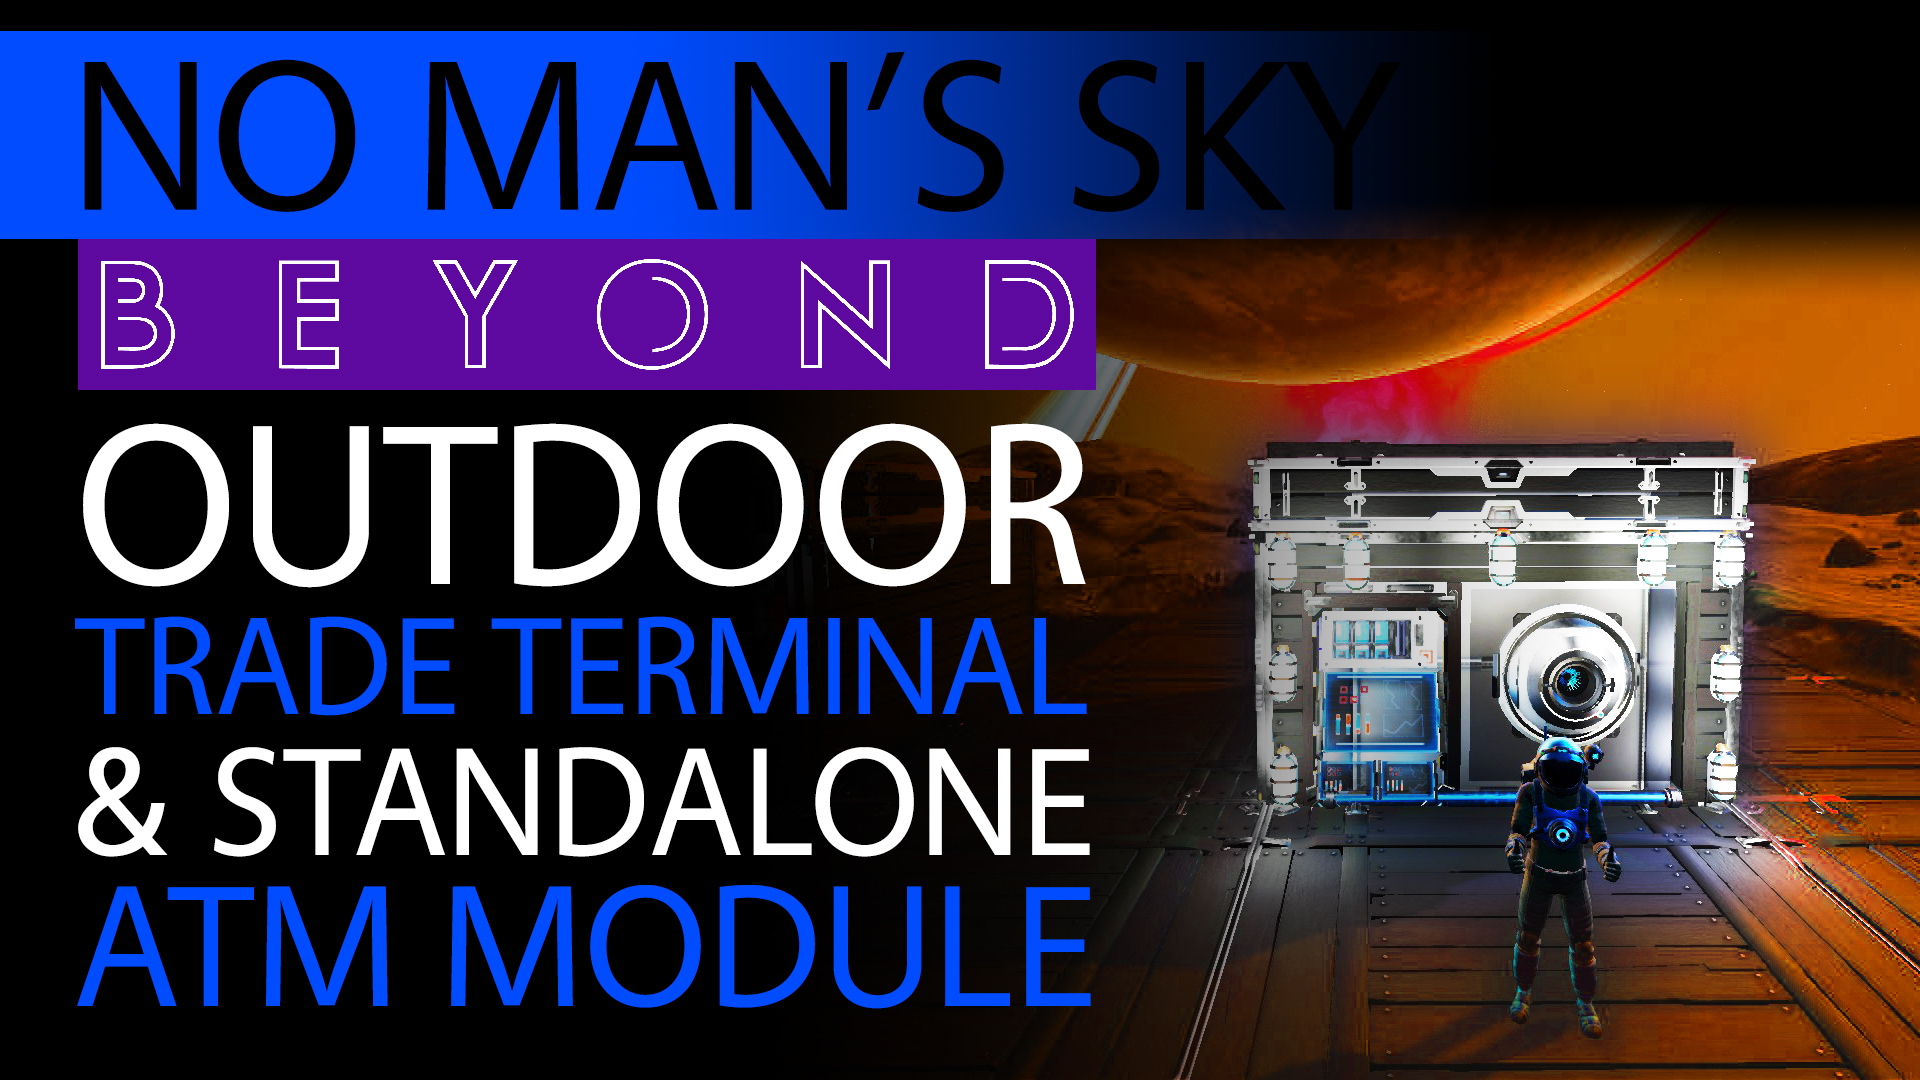 Outdoor_Galactic_Trade_Terminal-ATM_-_How_to_No_Mans_Sky_Beyond_Guide_-_Xaines_World_Building_Tips_T